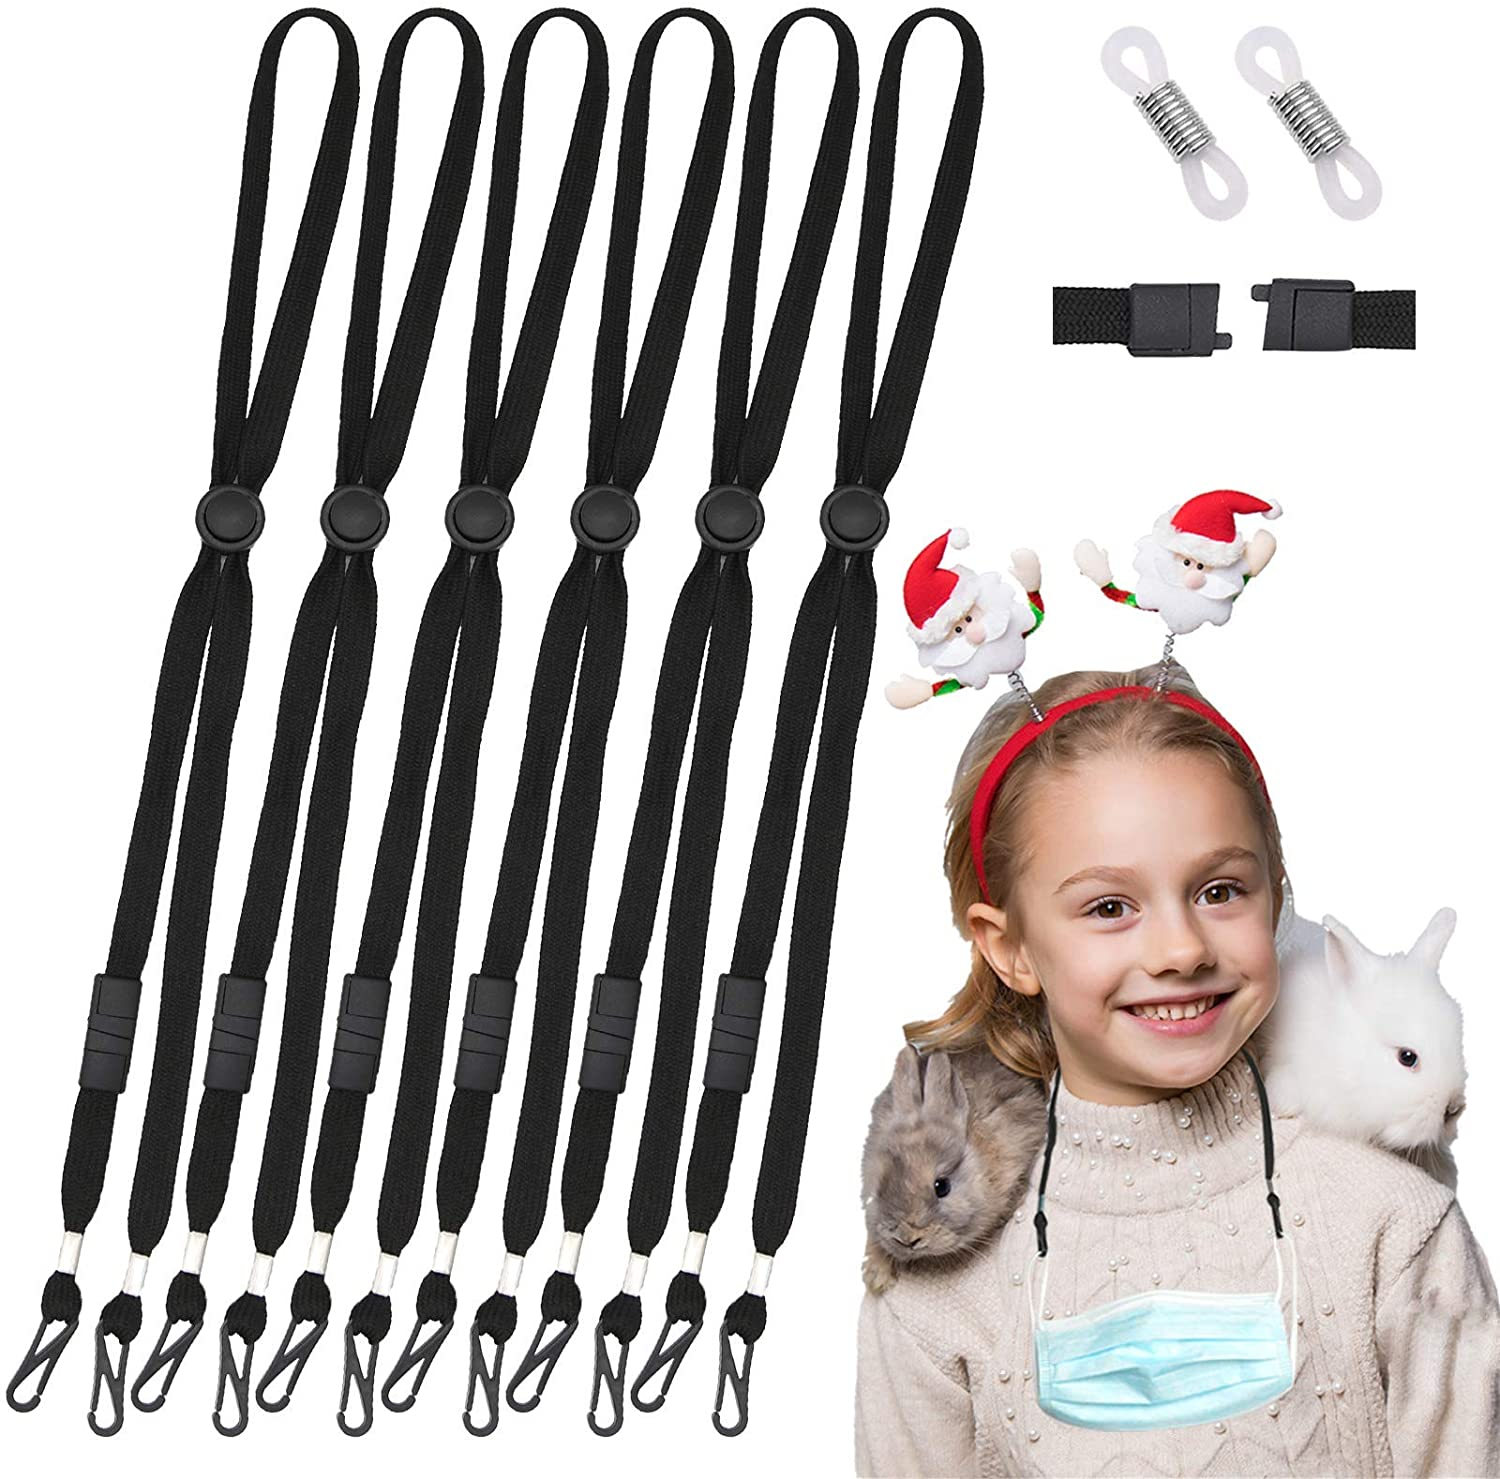 Black Face Mask Lanyards 6 Pack, Adjustable Safety Anti-Lost Mask String, Breakaway Neck Strap Holder with 12 Eyeglass Chain Ends, Comfortable Mask Ear Protector Savers for Women, Men, Kids